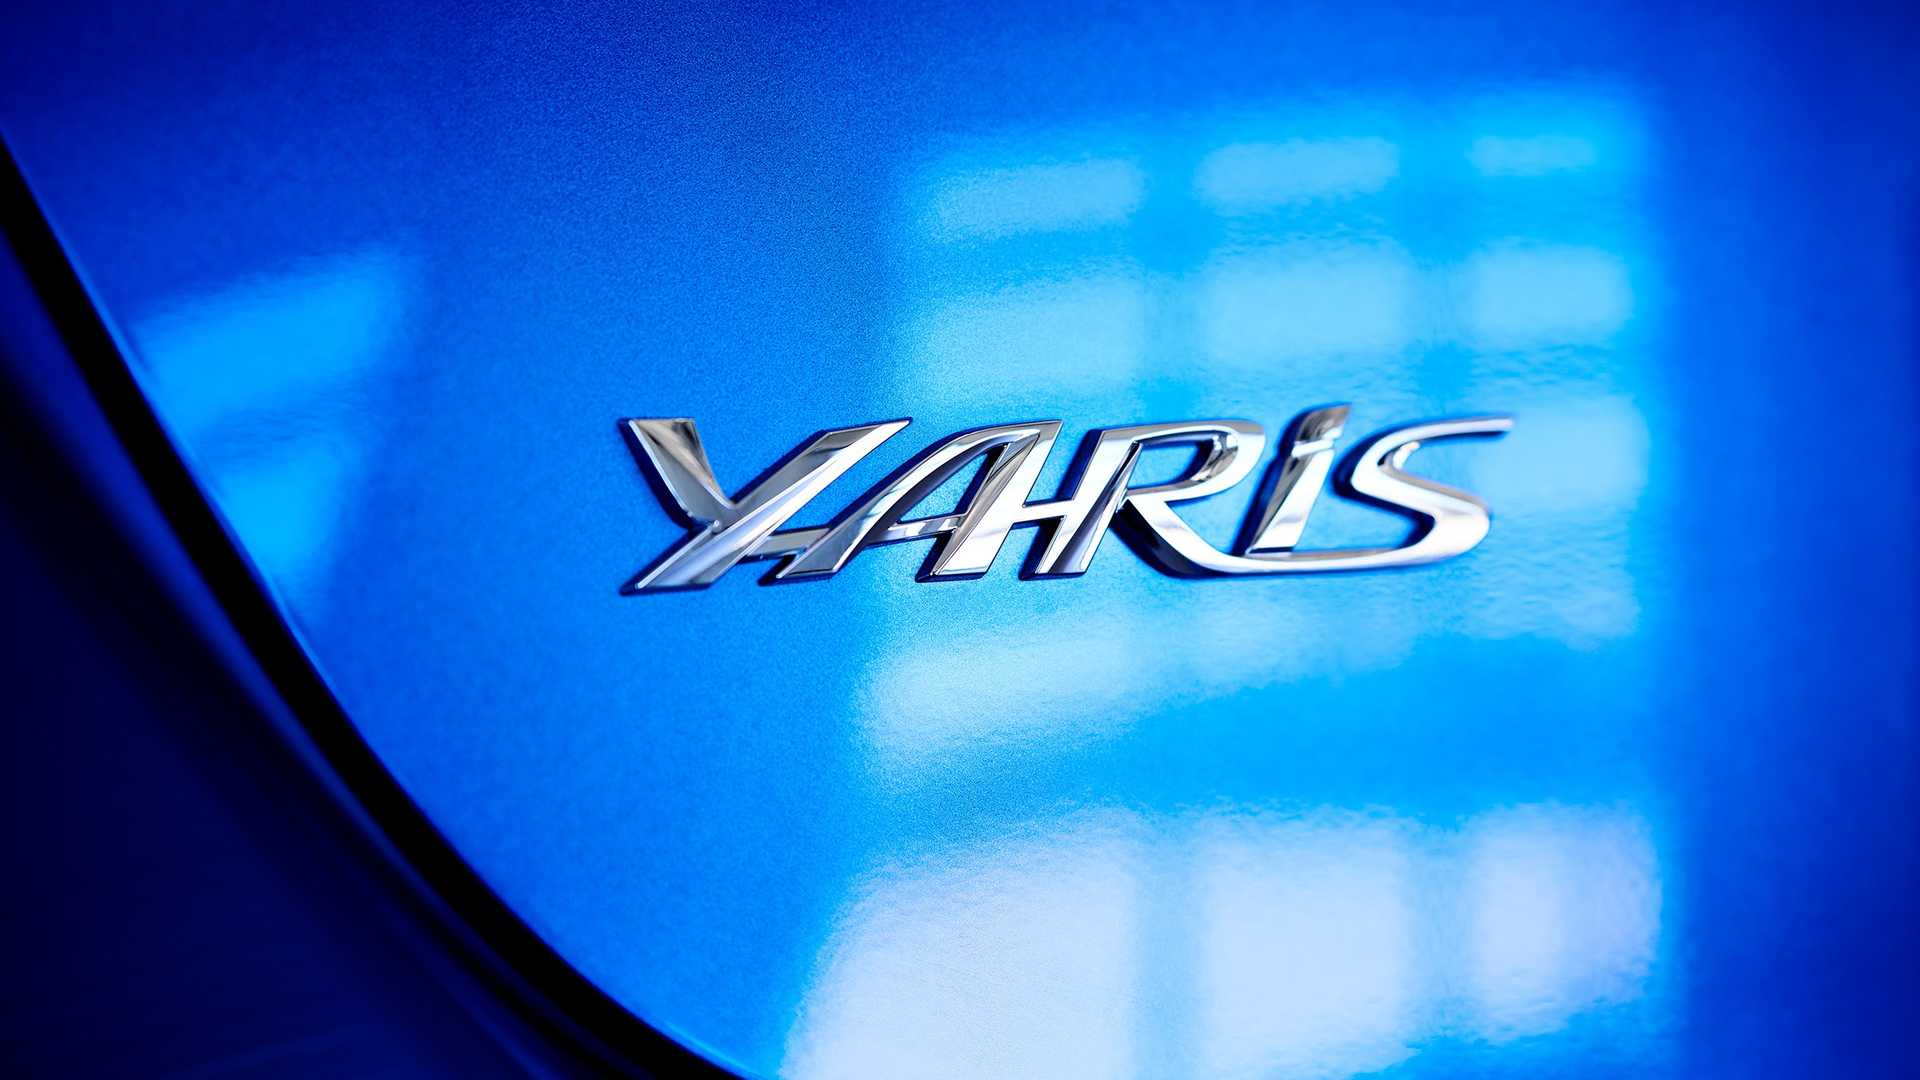 2020 Toyota Yaris Hatchback Badge Wallpaper (5)